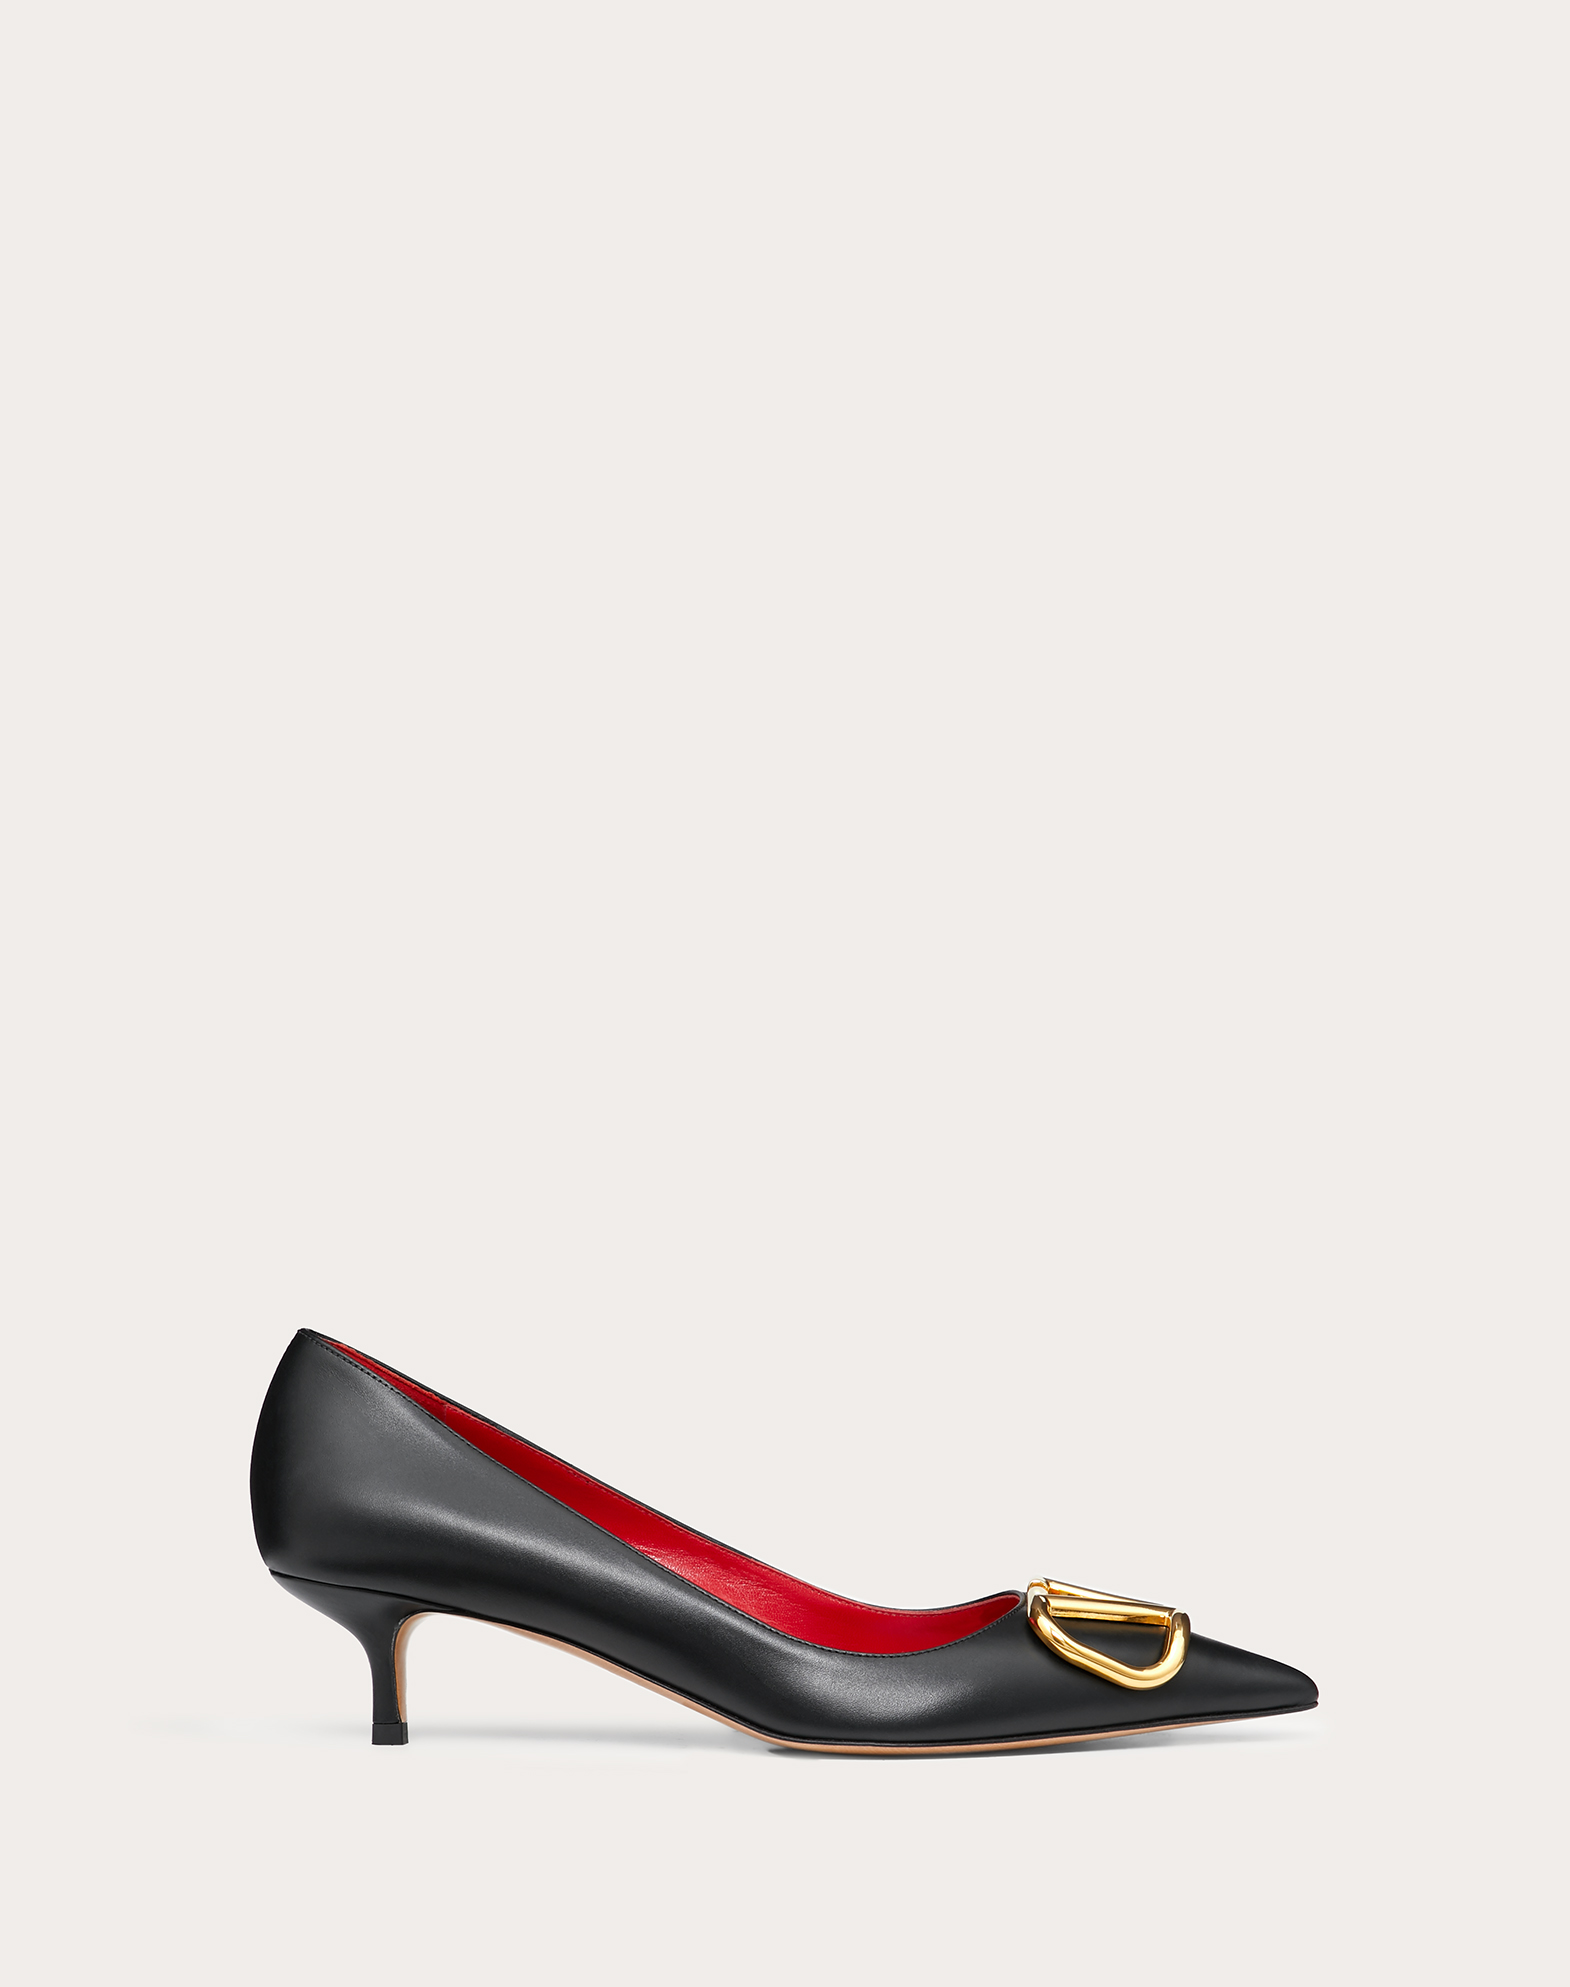 VLOGO calfskin pump 45 mm